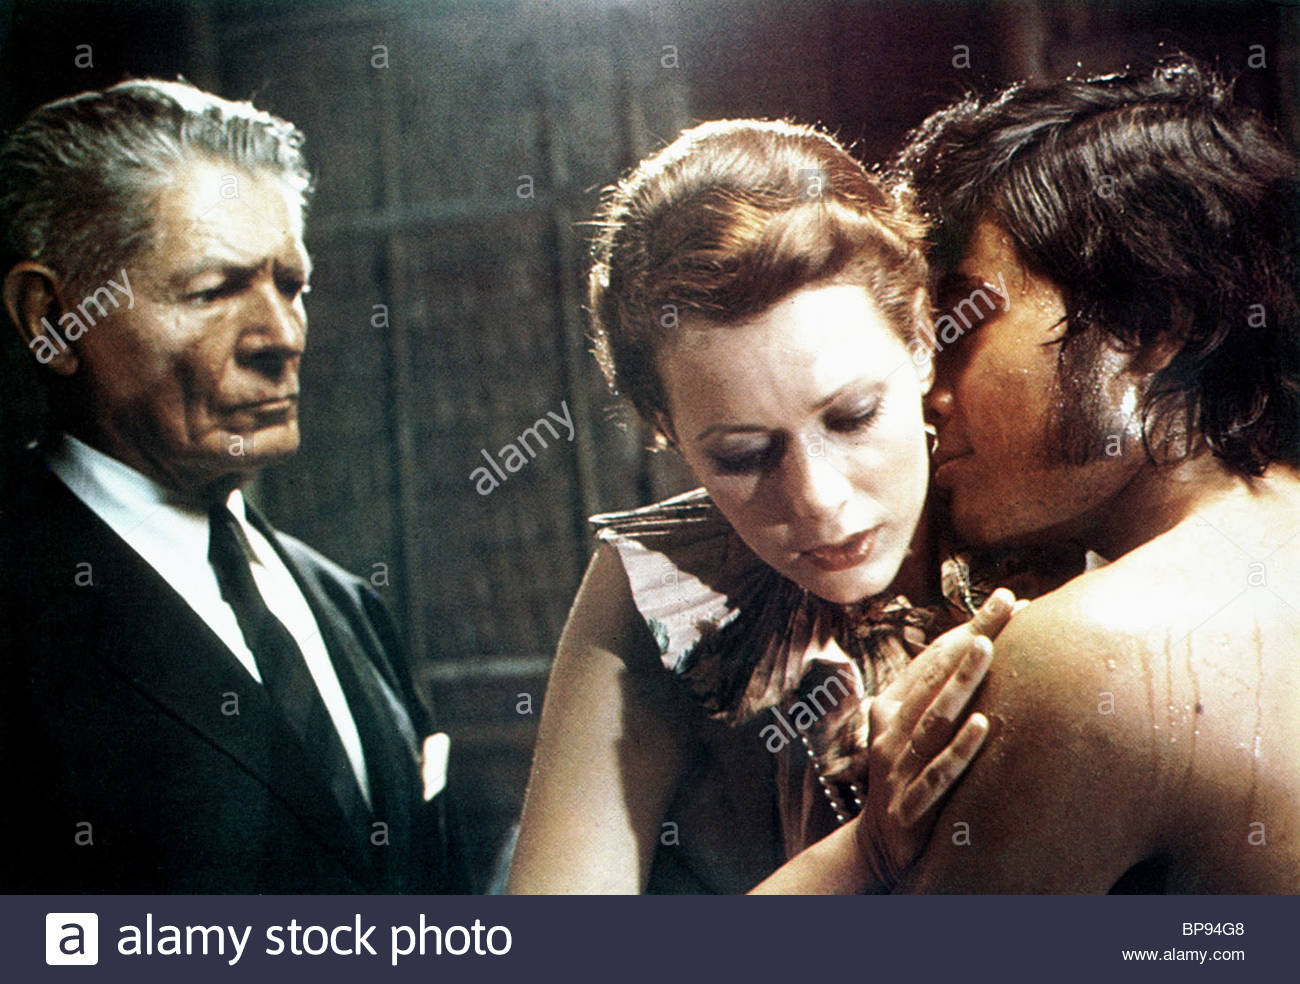 ALAIN CUNY & SYLVIA KRISTEL EMMANUELLE (1974 Stock Photo ...